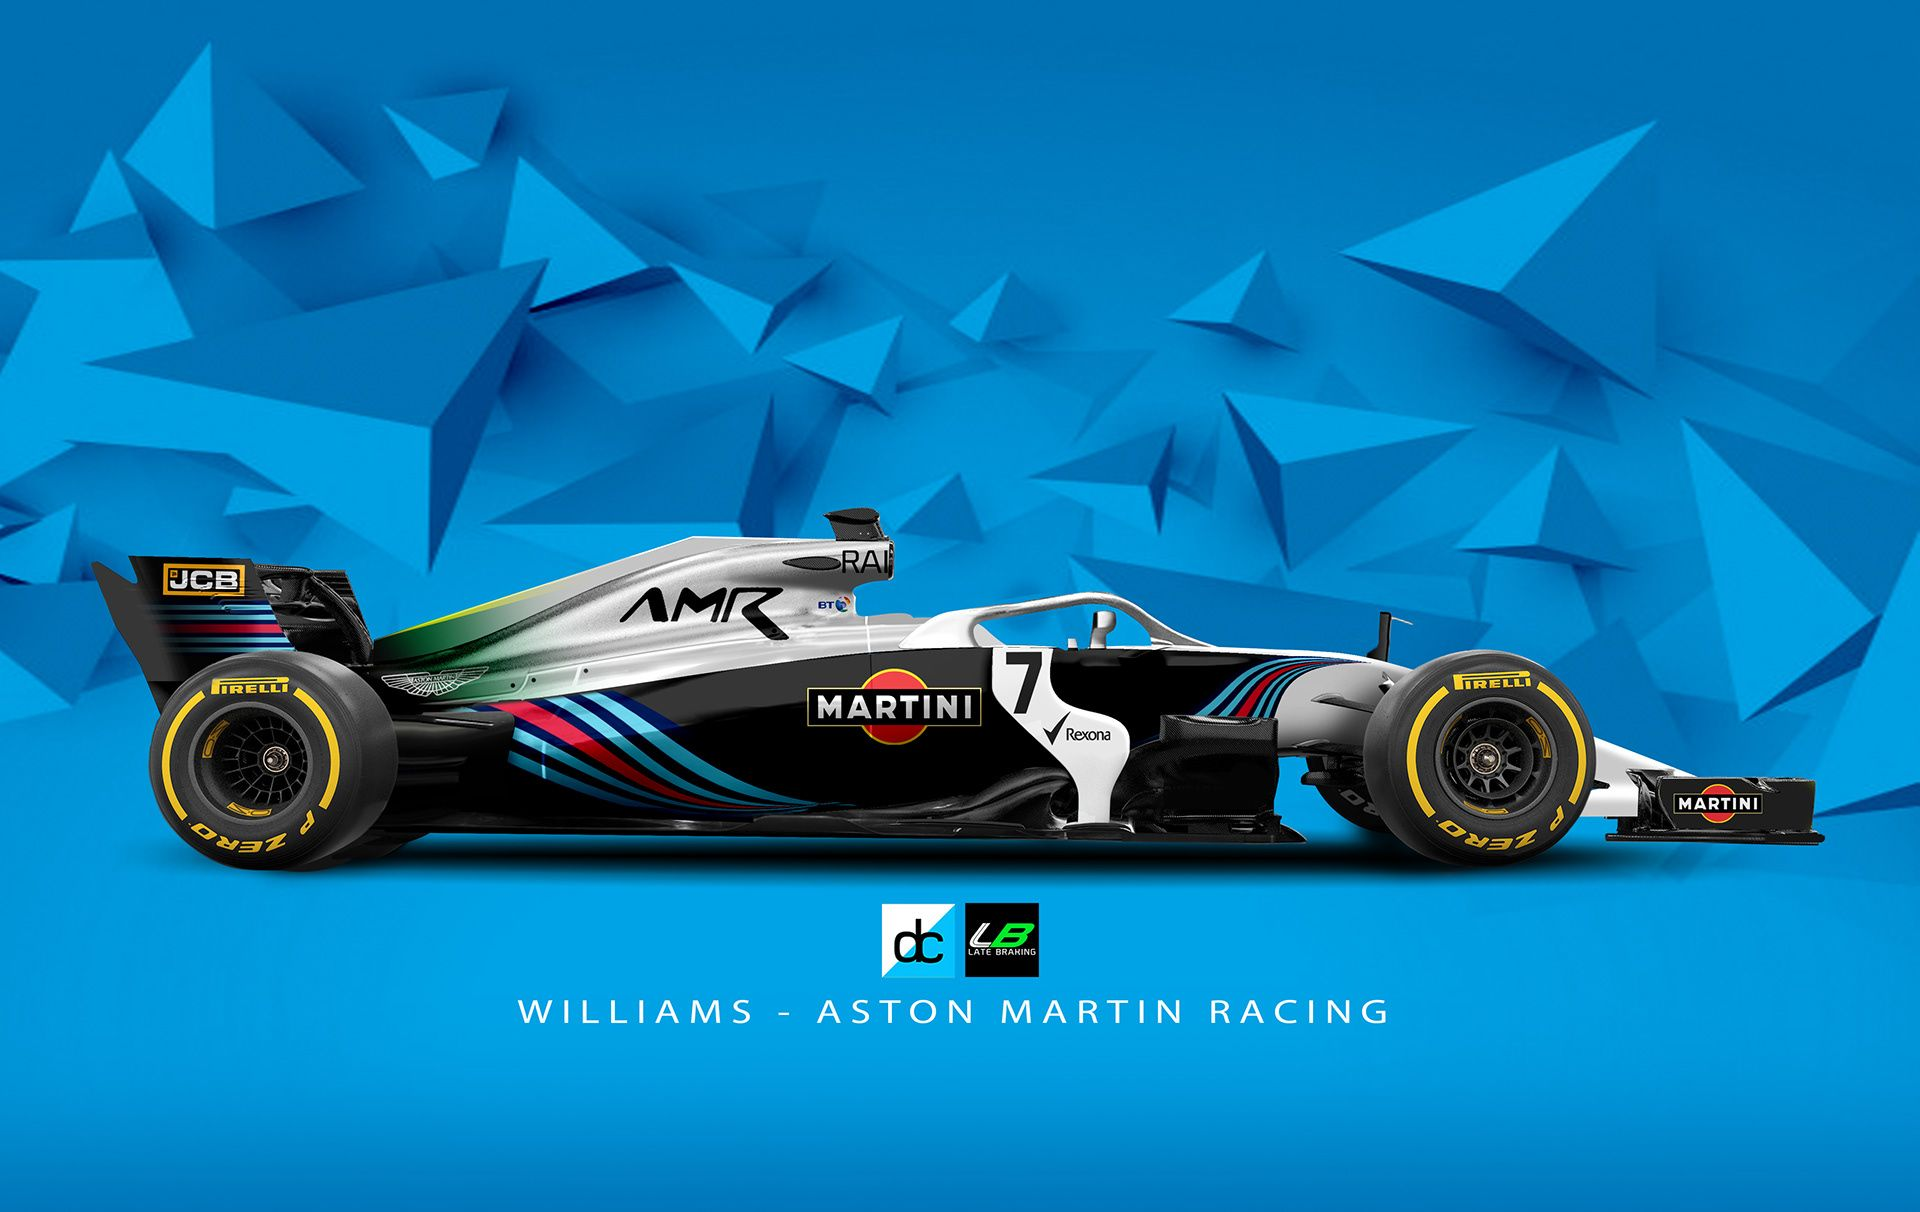 Williams Aston Martin Racing Concept Latebraking On Behance Racing Aston Martin Aston